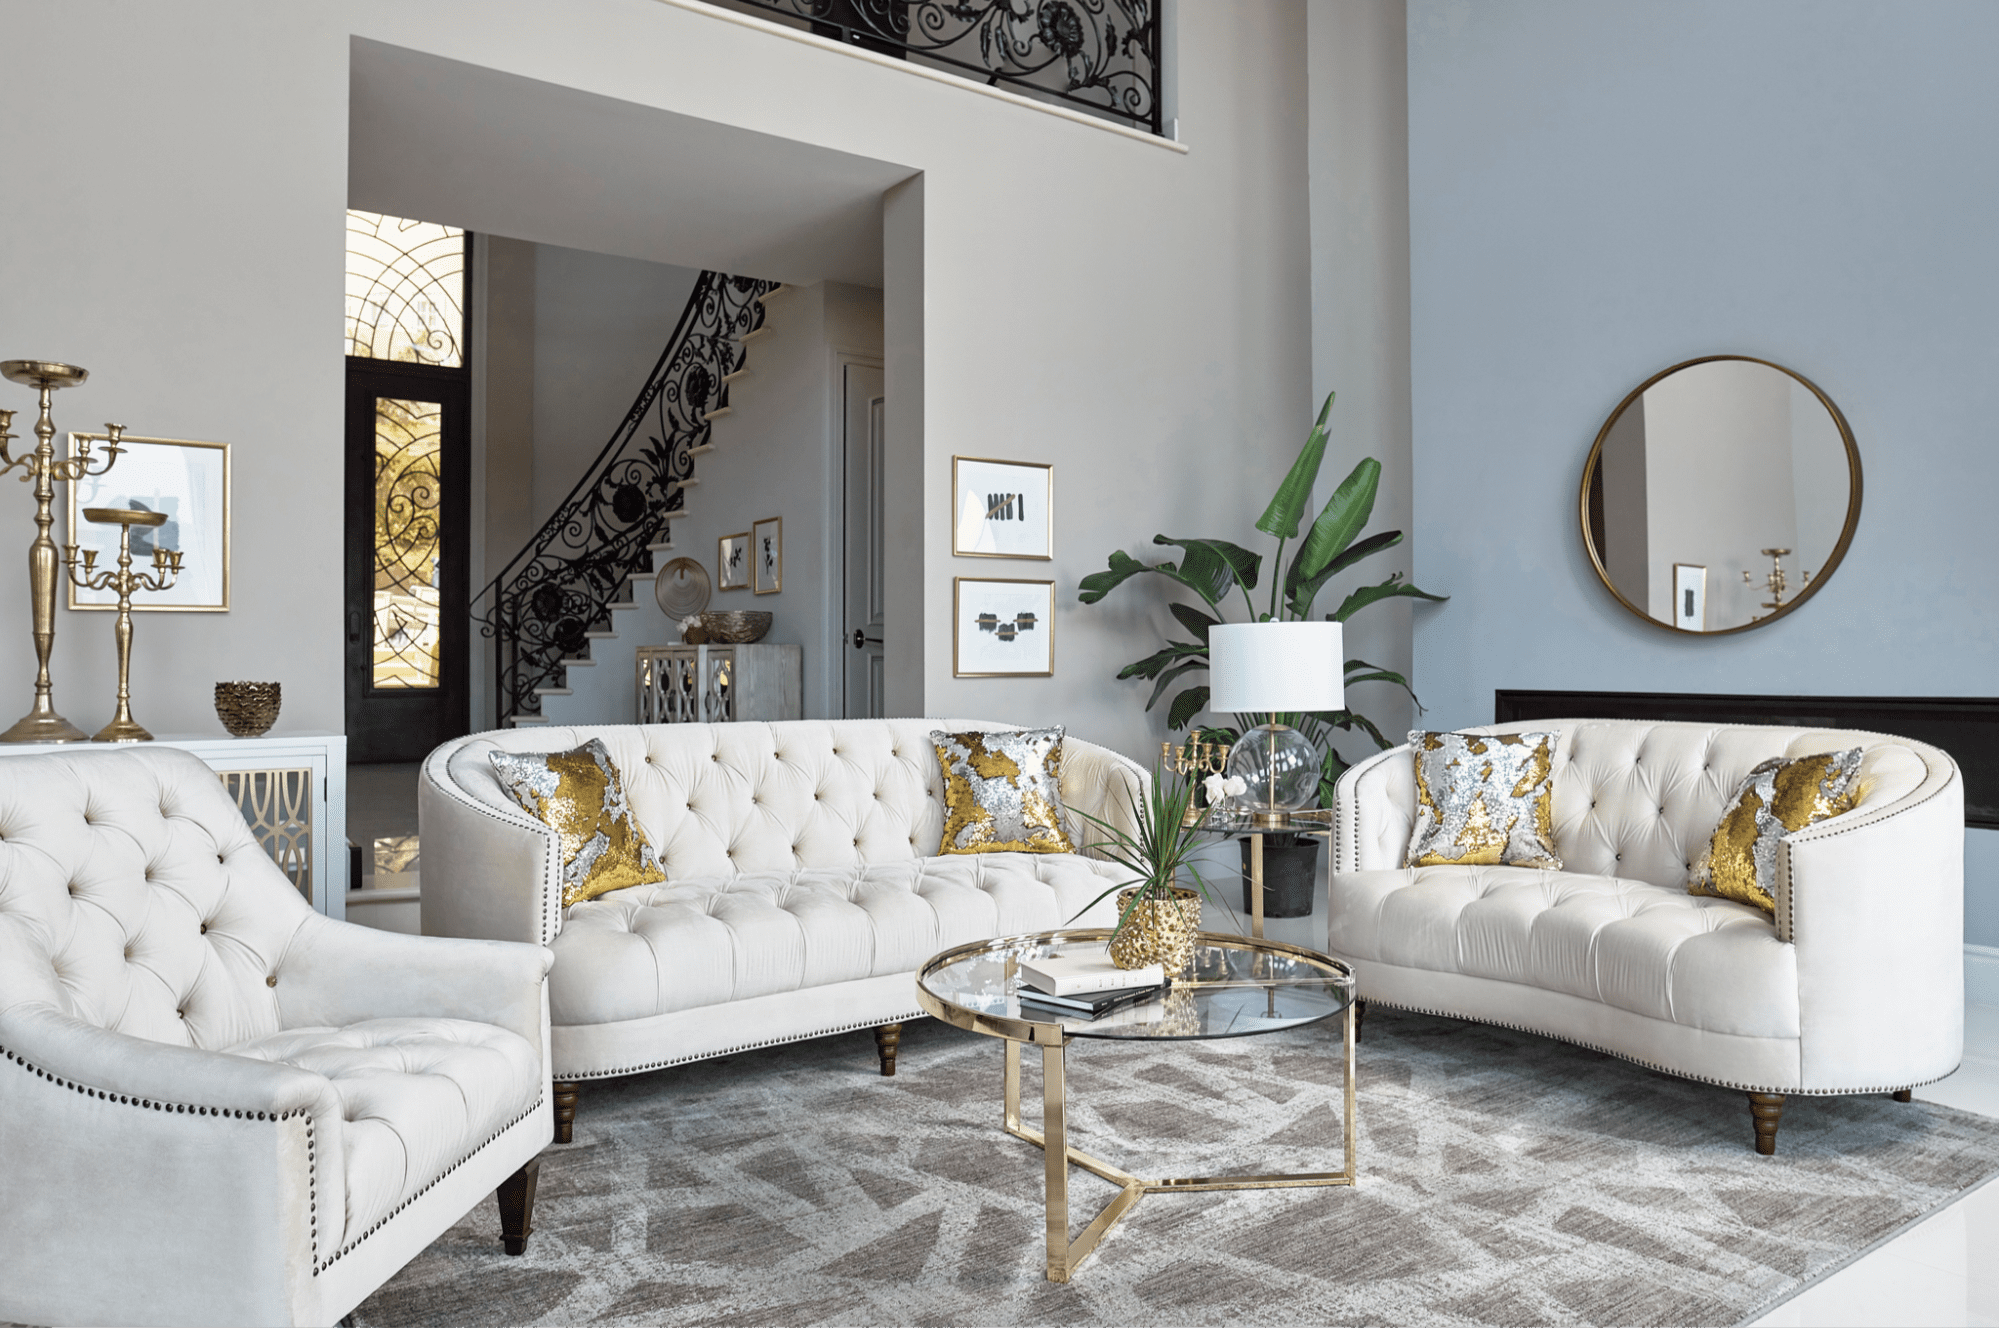 11 round coffee tables to bring your home decor full circle